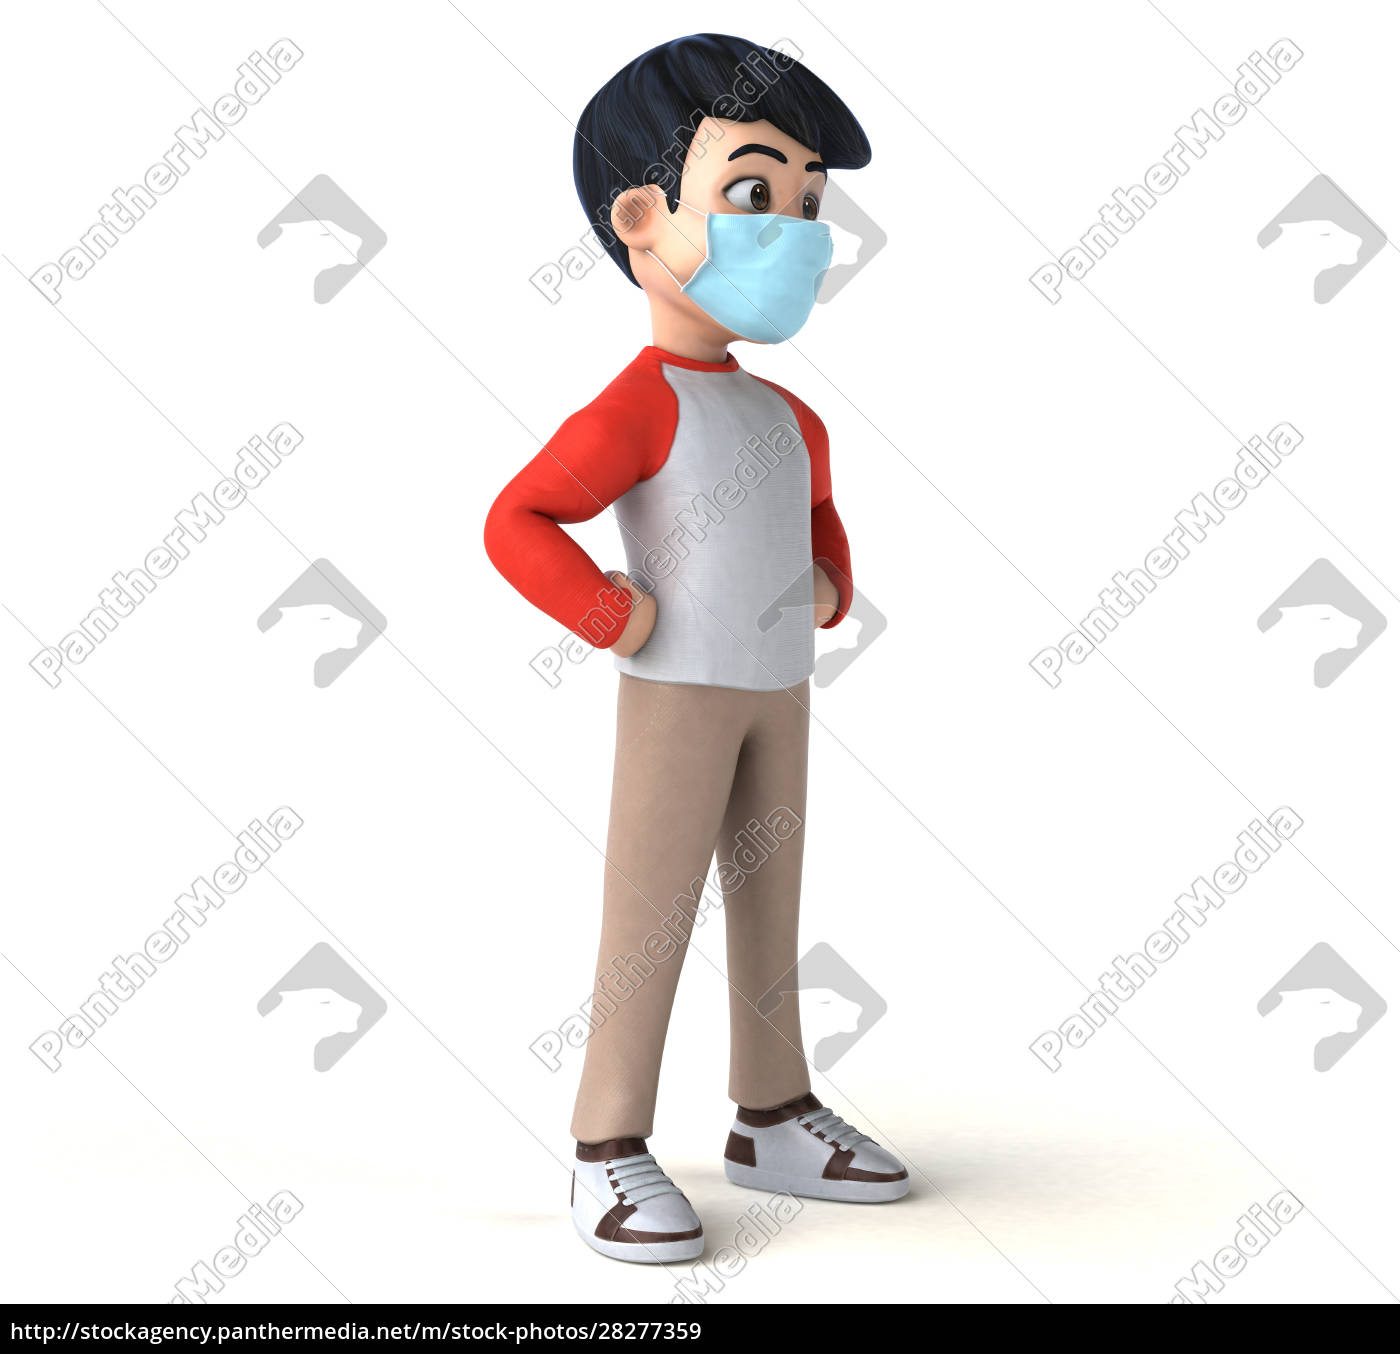 3d, illustration, of, a, teenager, with - 28277359